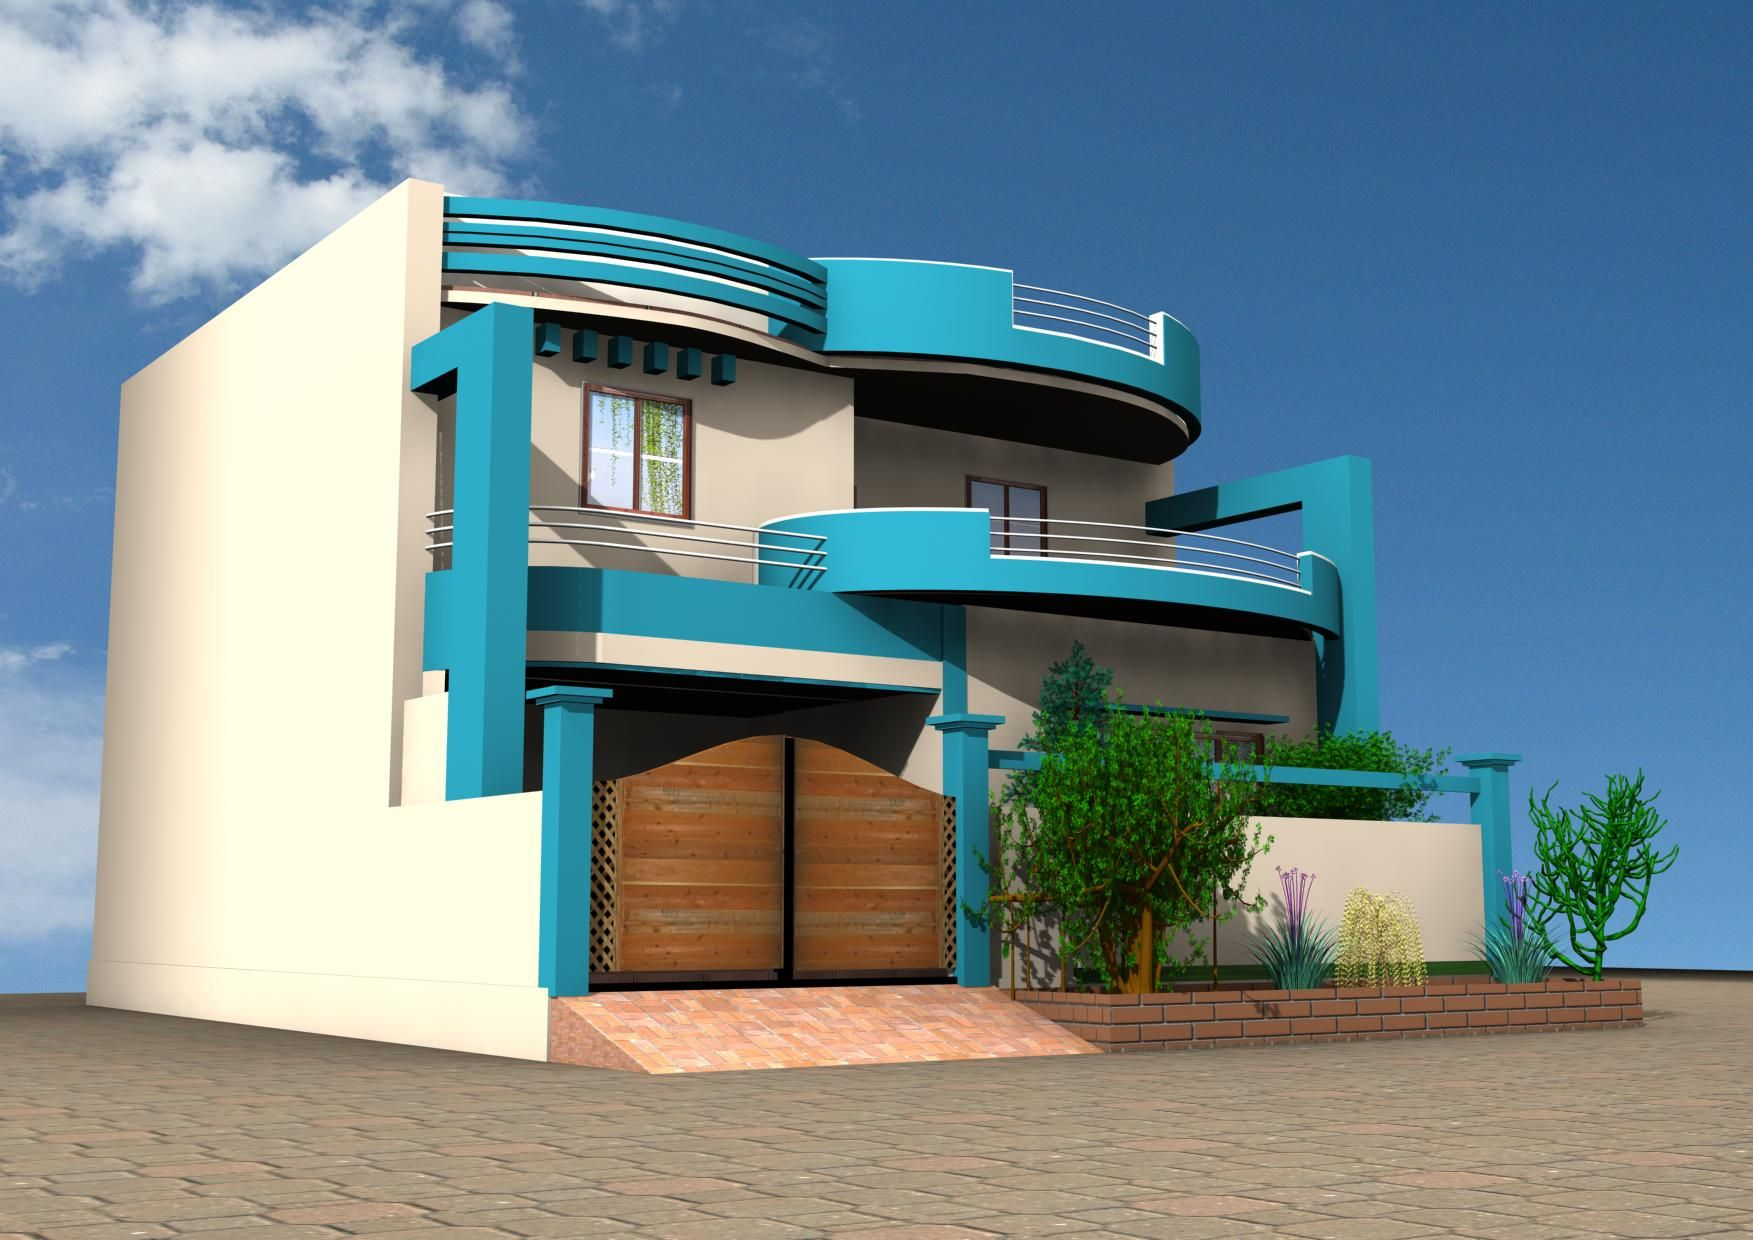 3d home design images hd 1080p 3d home